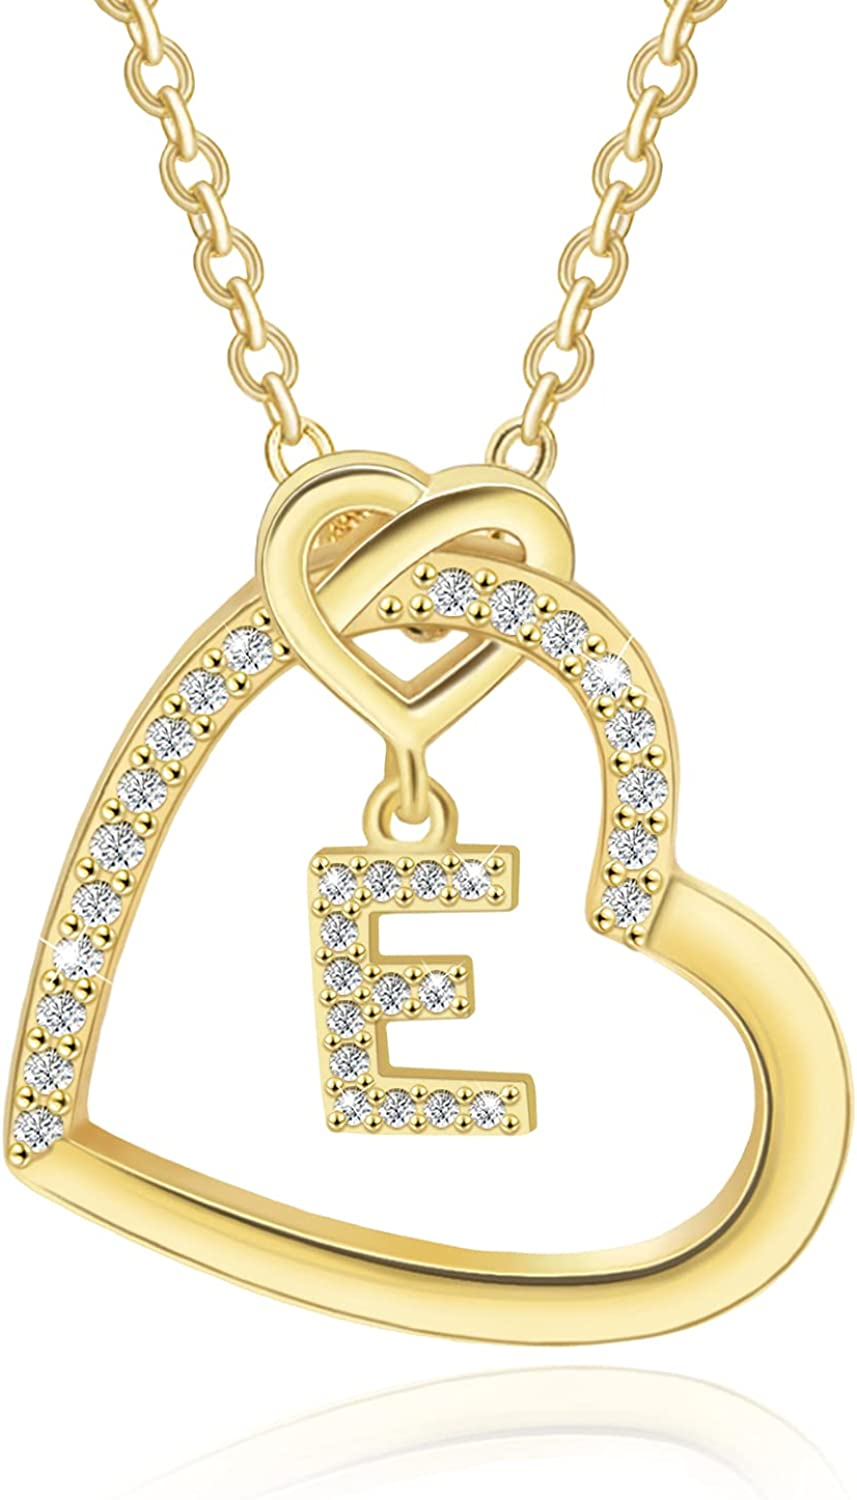 Heart Initial Necklace for Women Gold Popular brand in the world Oklahoma City Mall Neckla Plated 14K